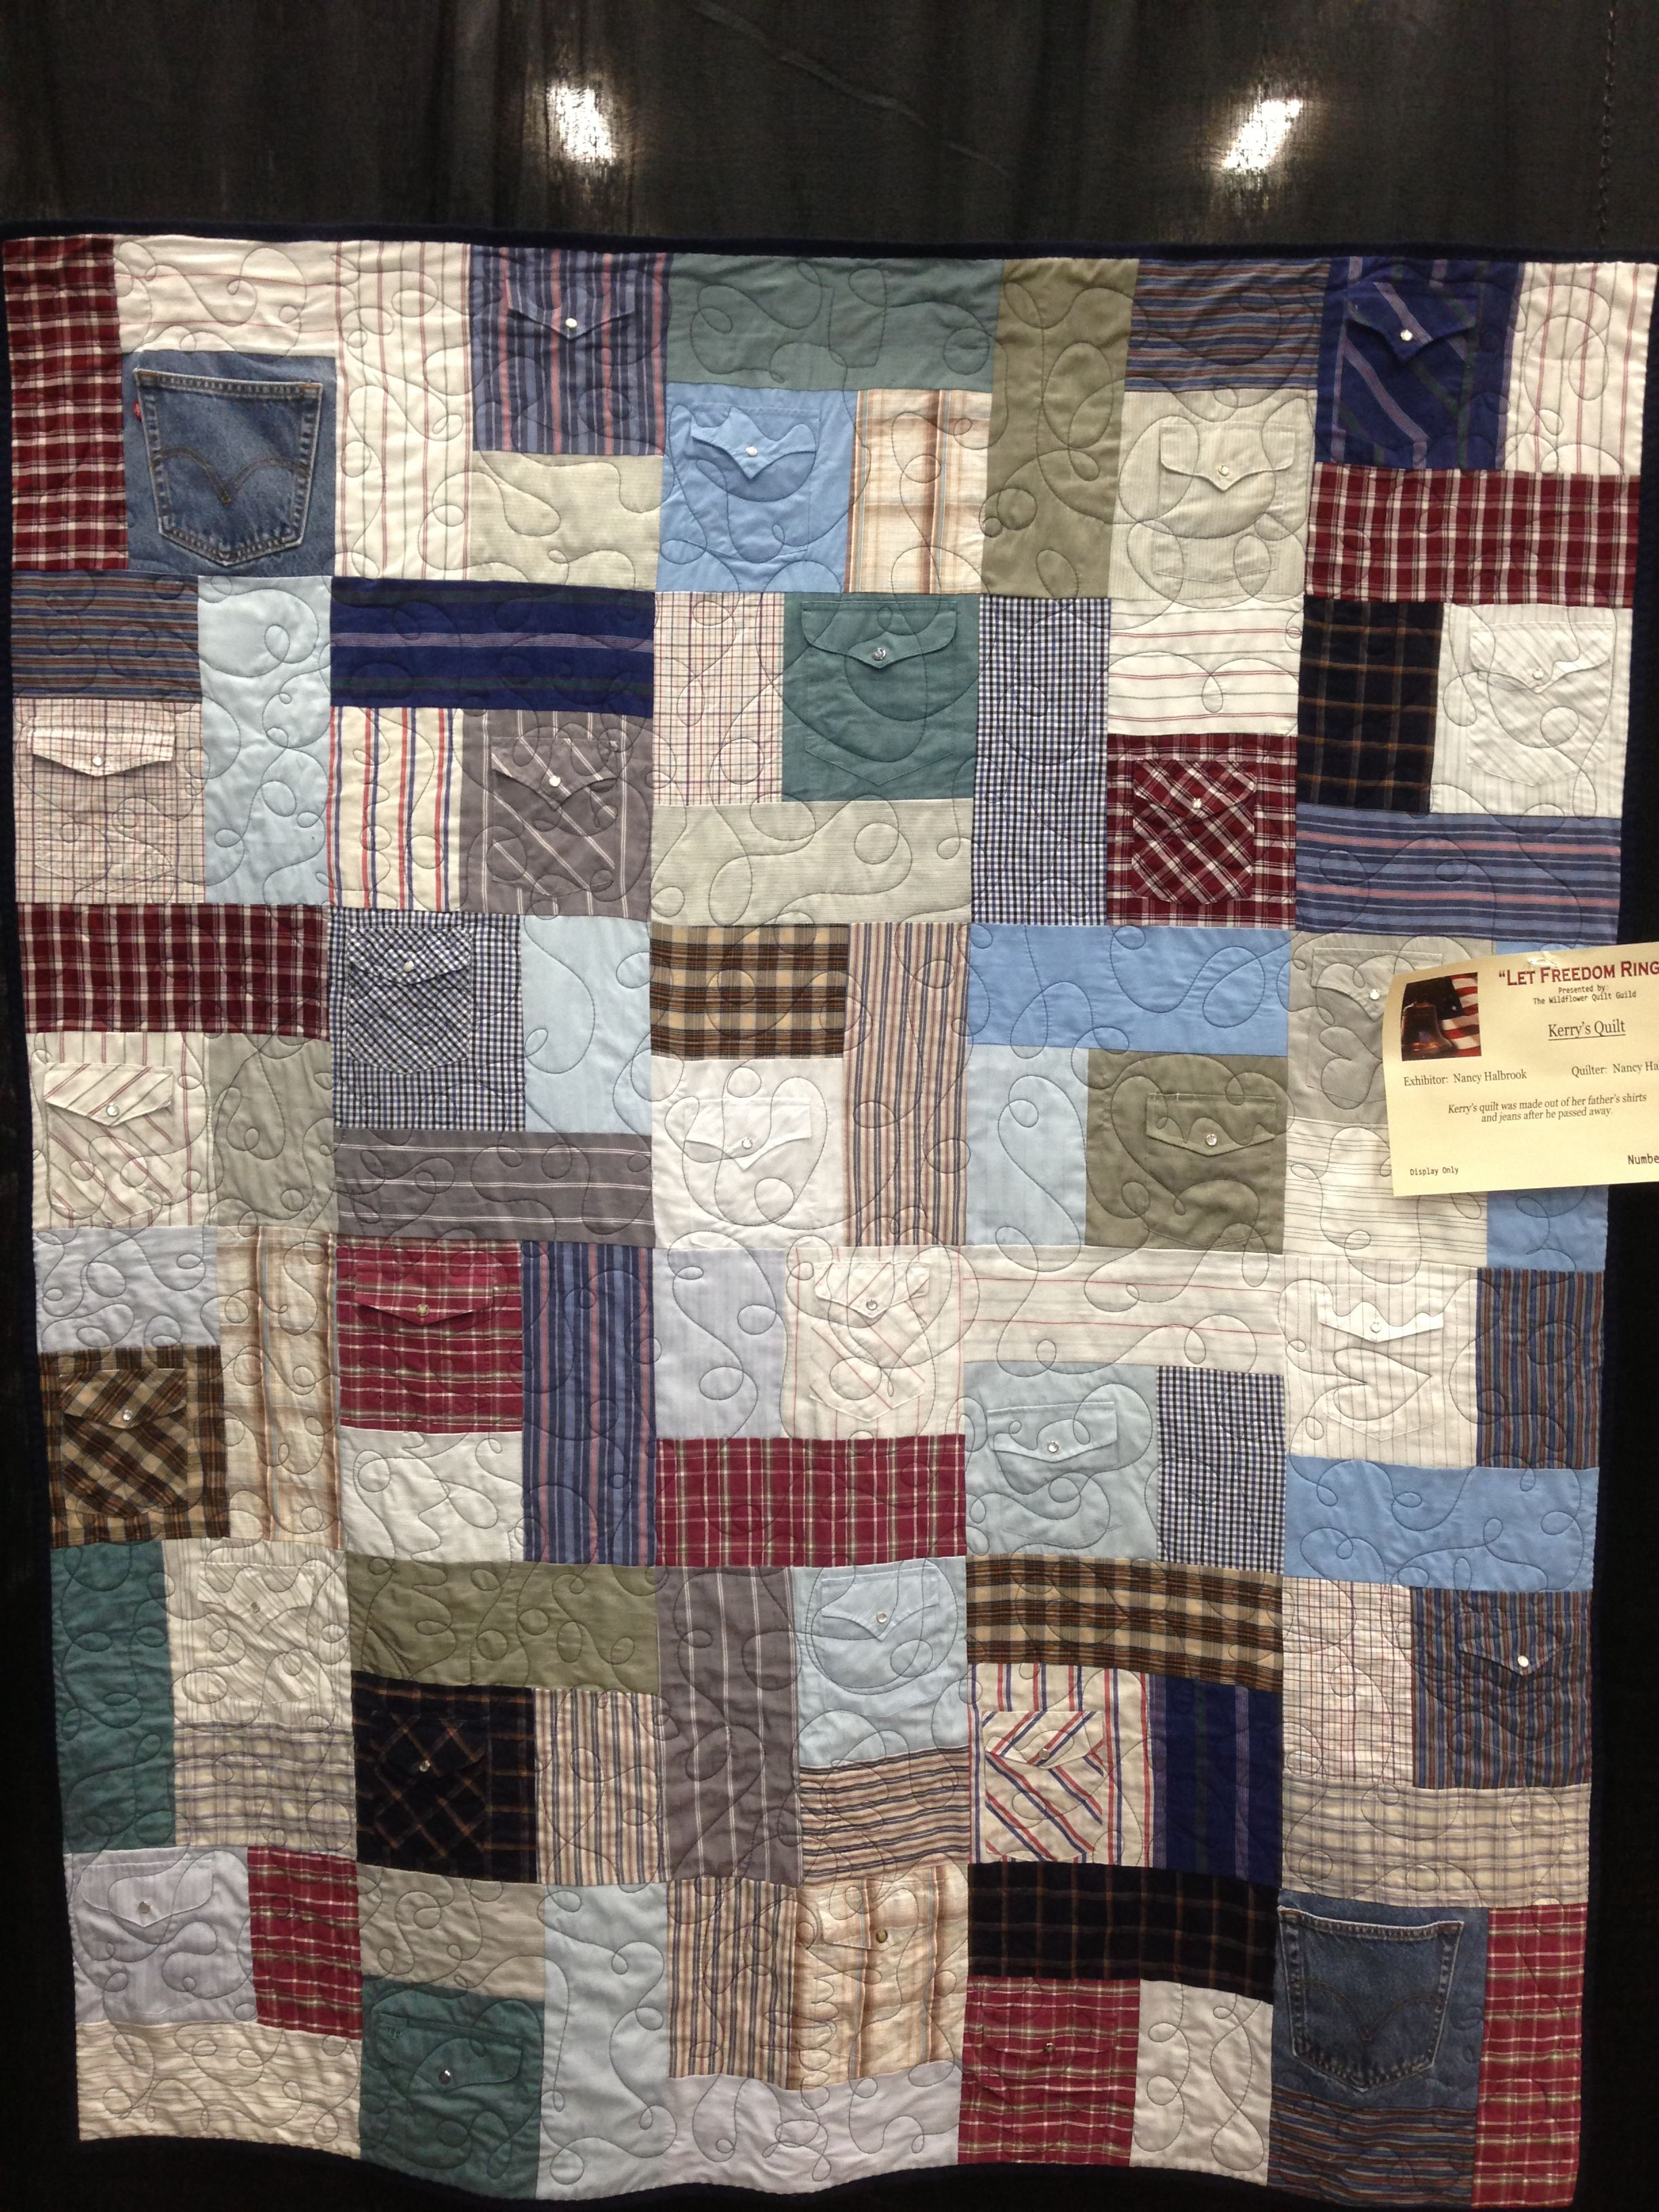 Memorial quilt from Tshirts, pajama pants and other memories ... : memorial quilt patterns - Adamdwight.com